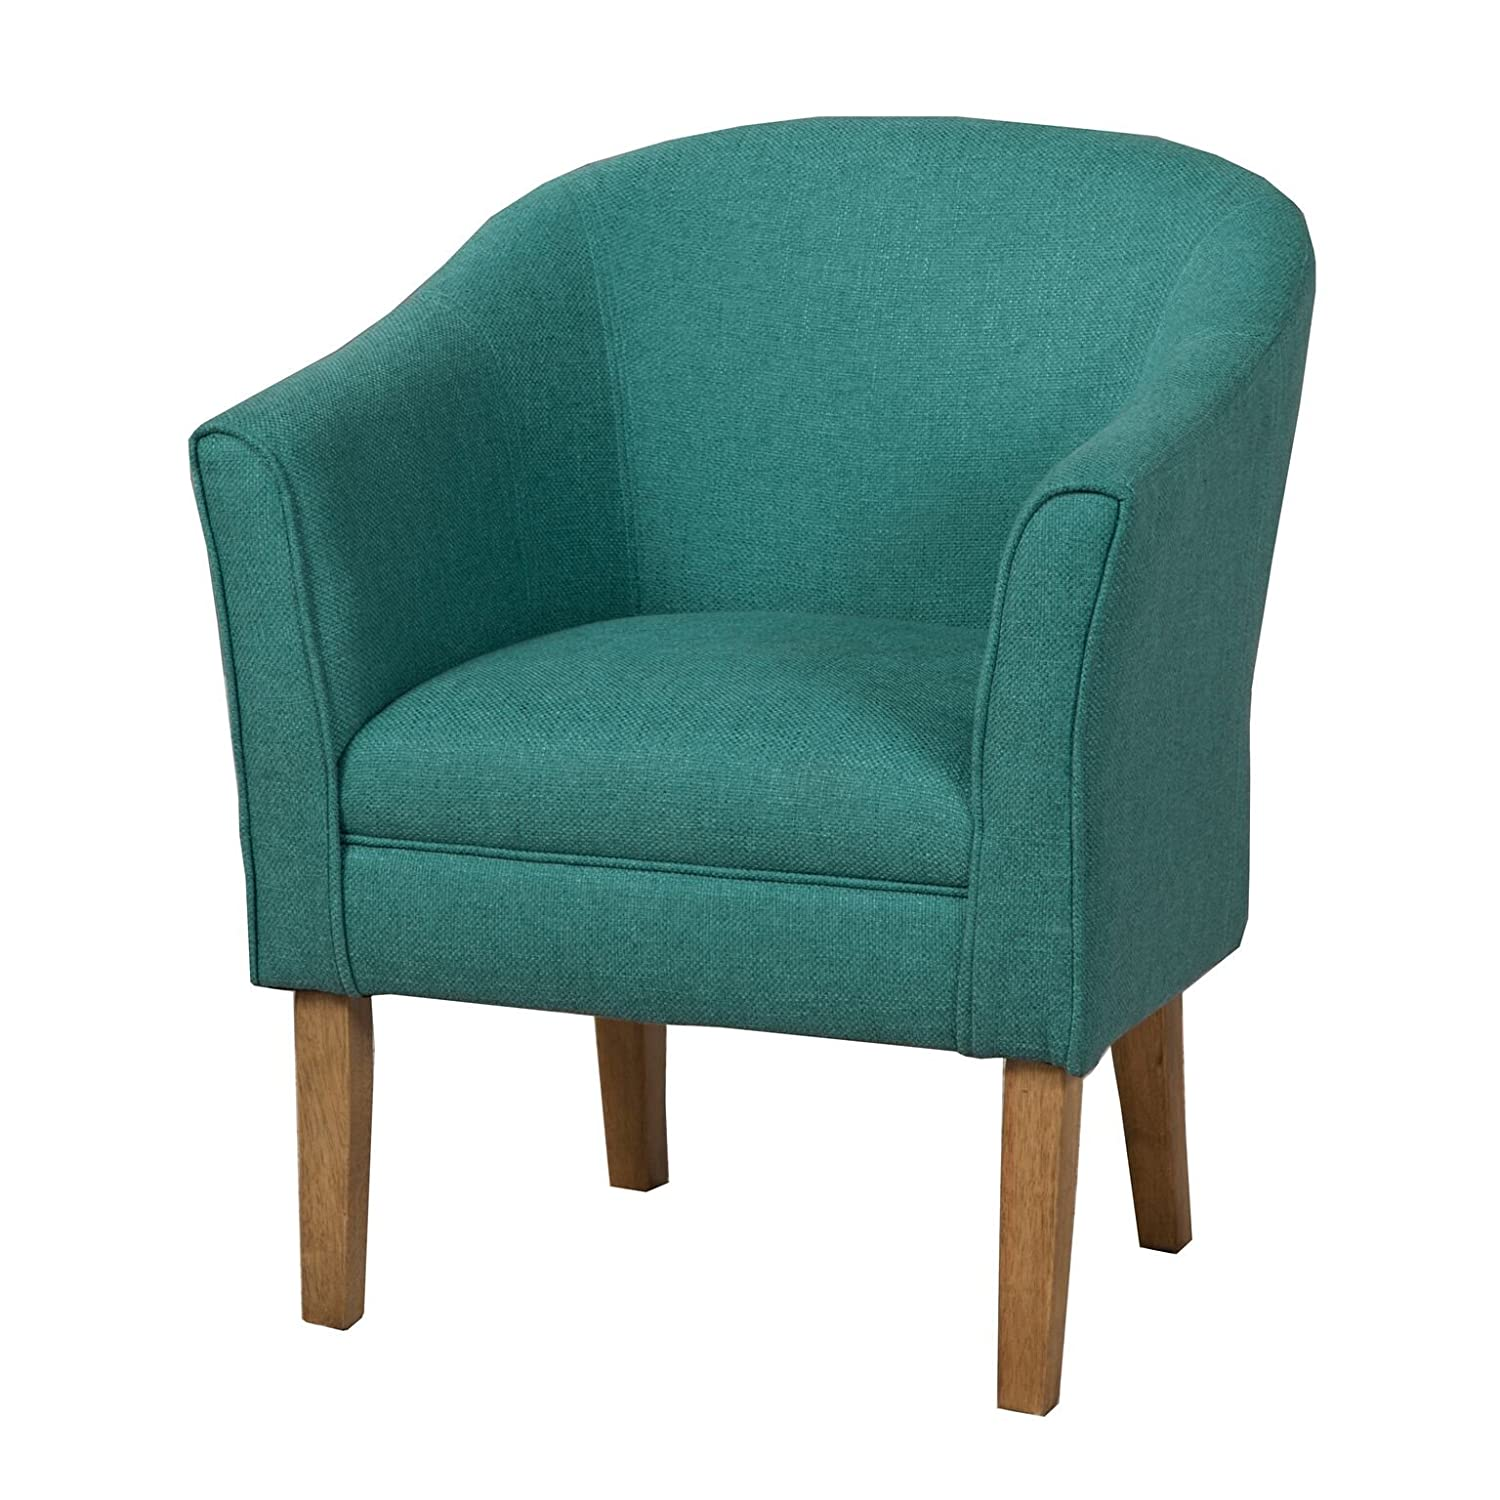 Amazon com homepop chunky textured accent chair living room furniture medium teal kitchen dining